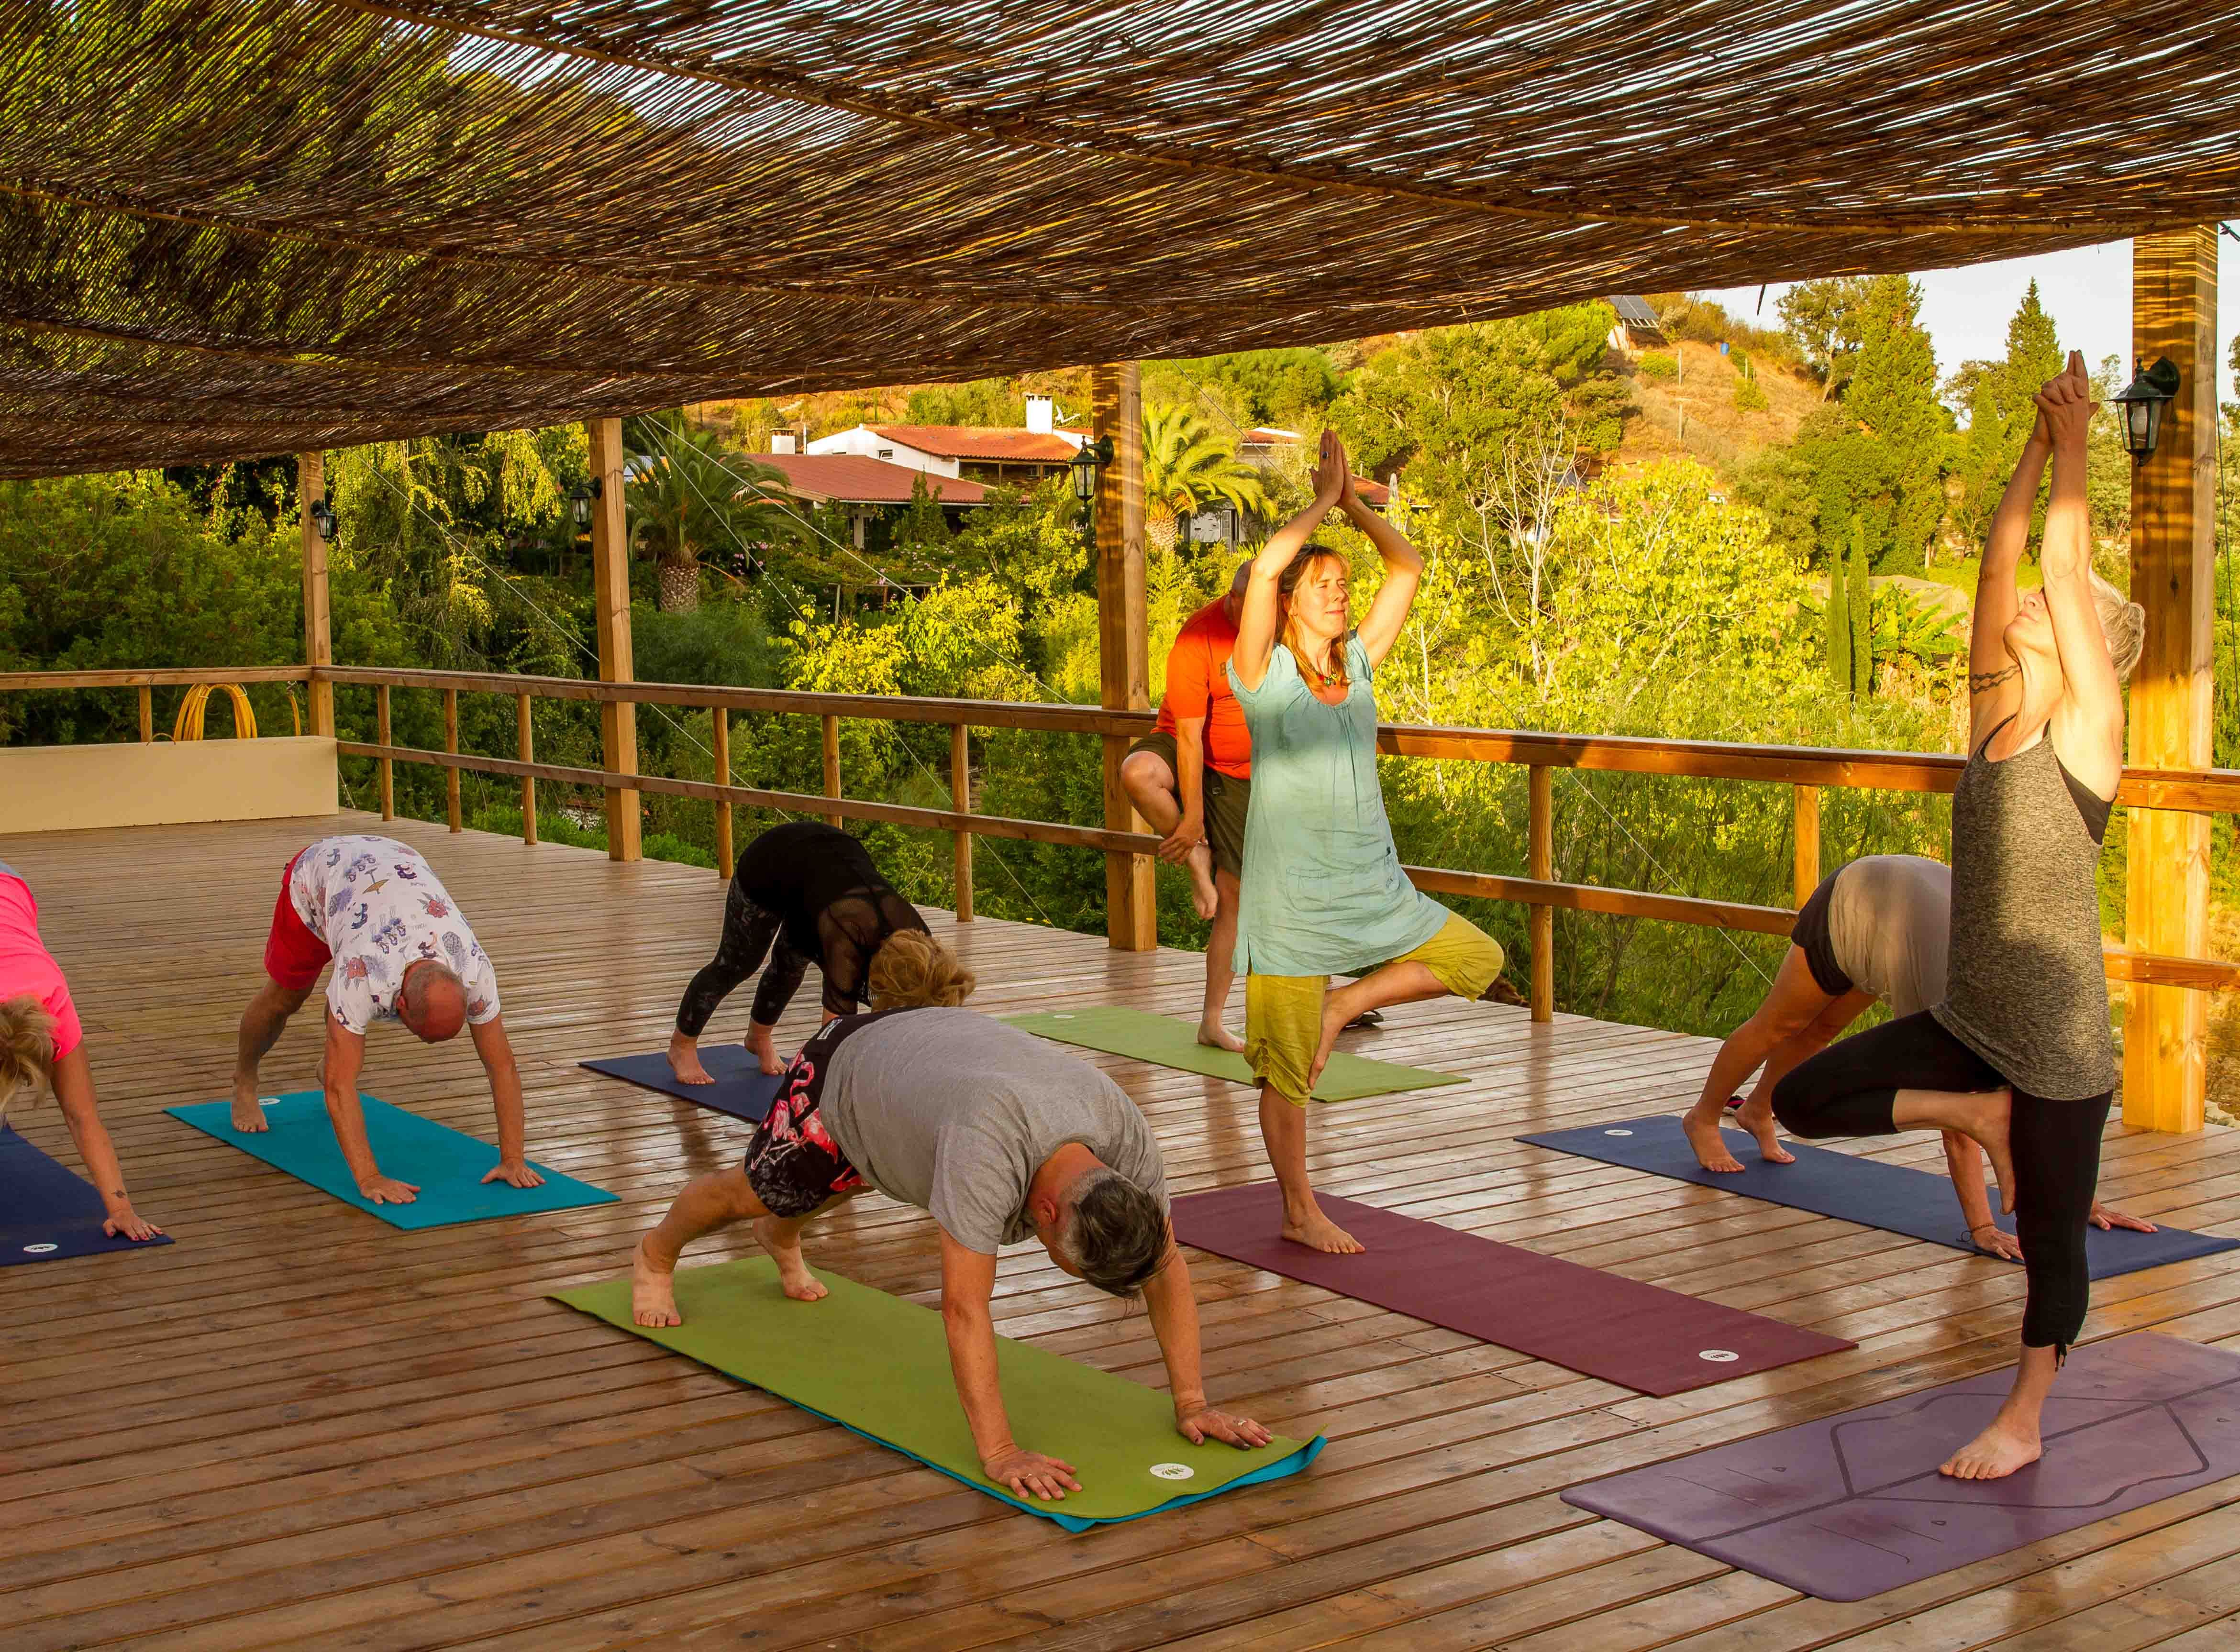 A large Yoga Shala either for groups or individuals